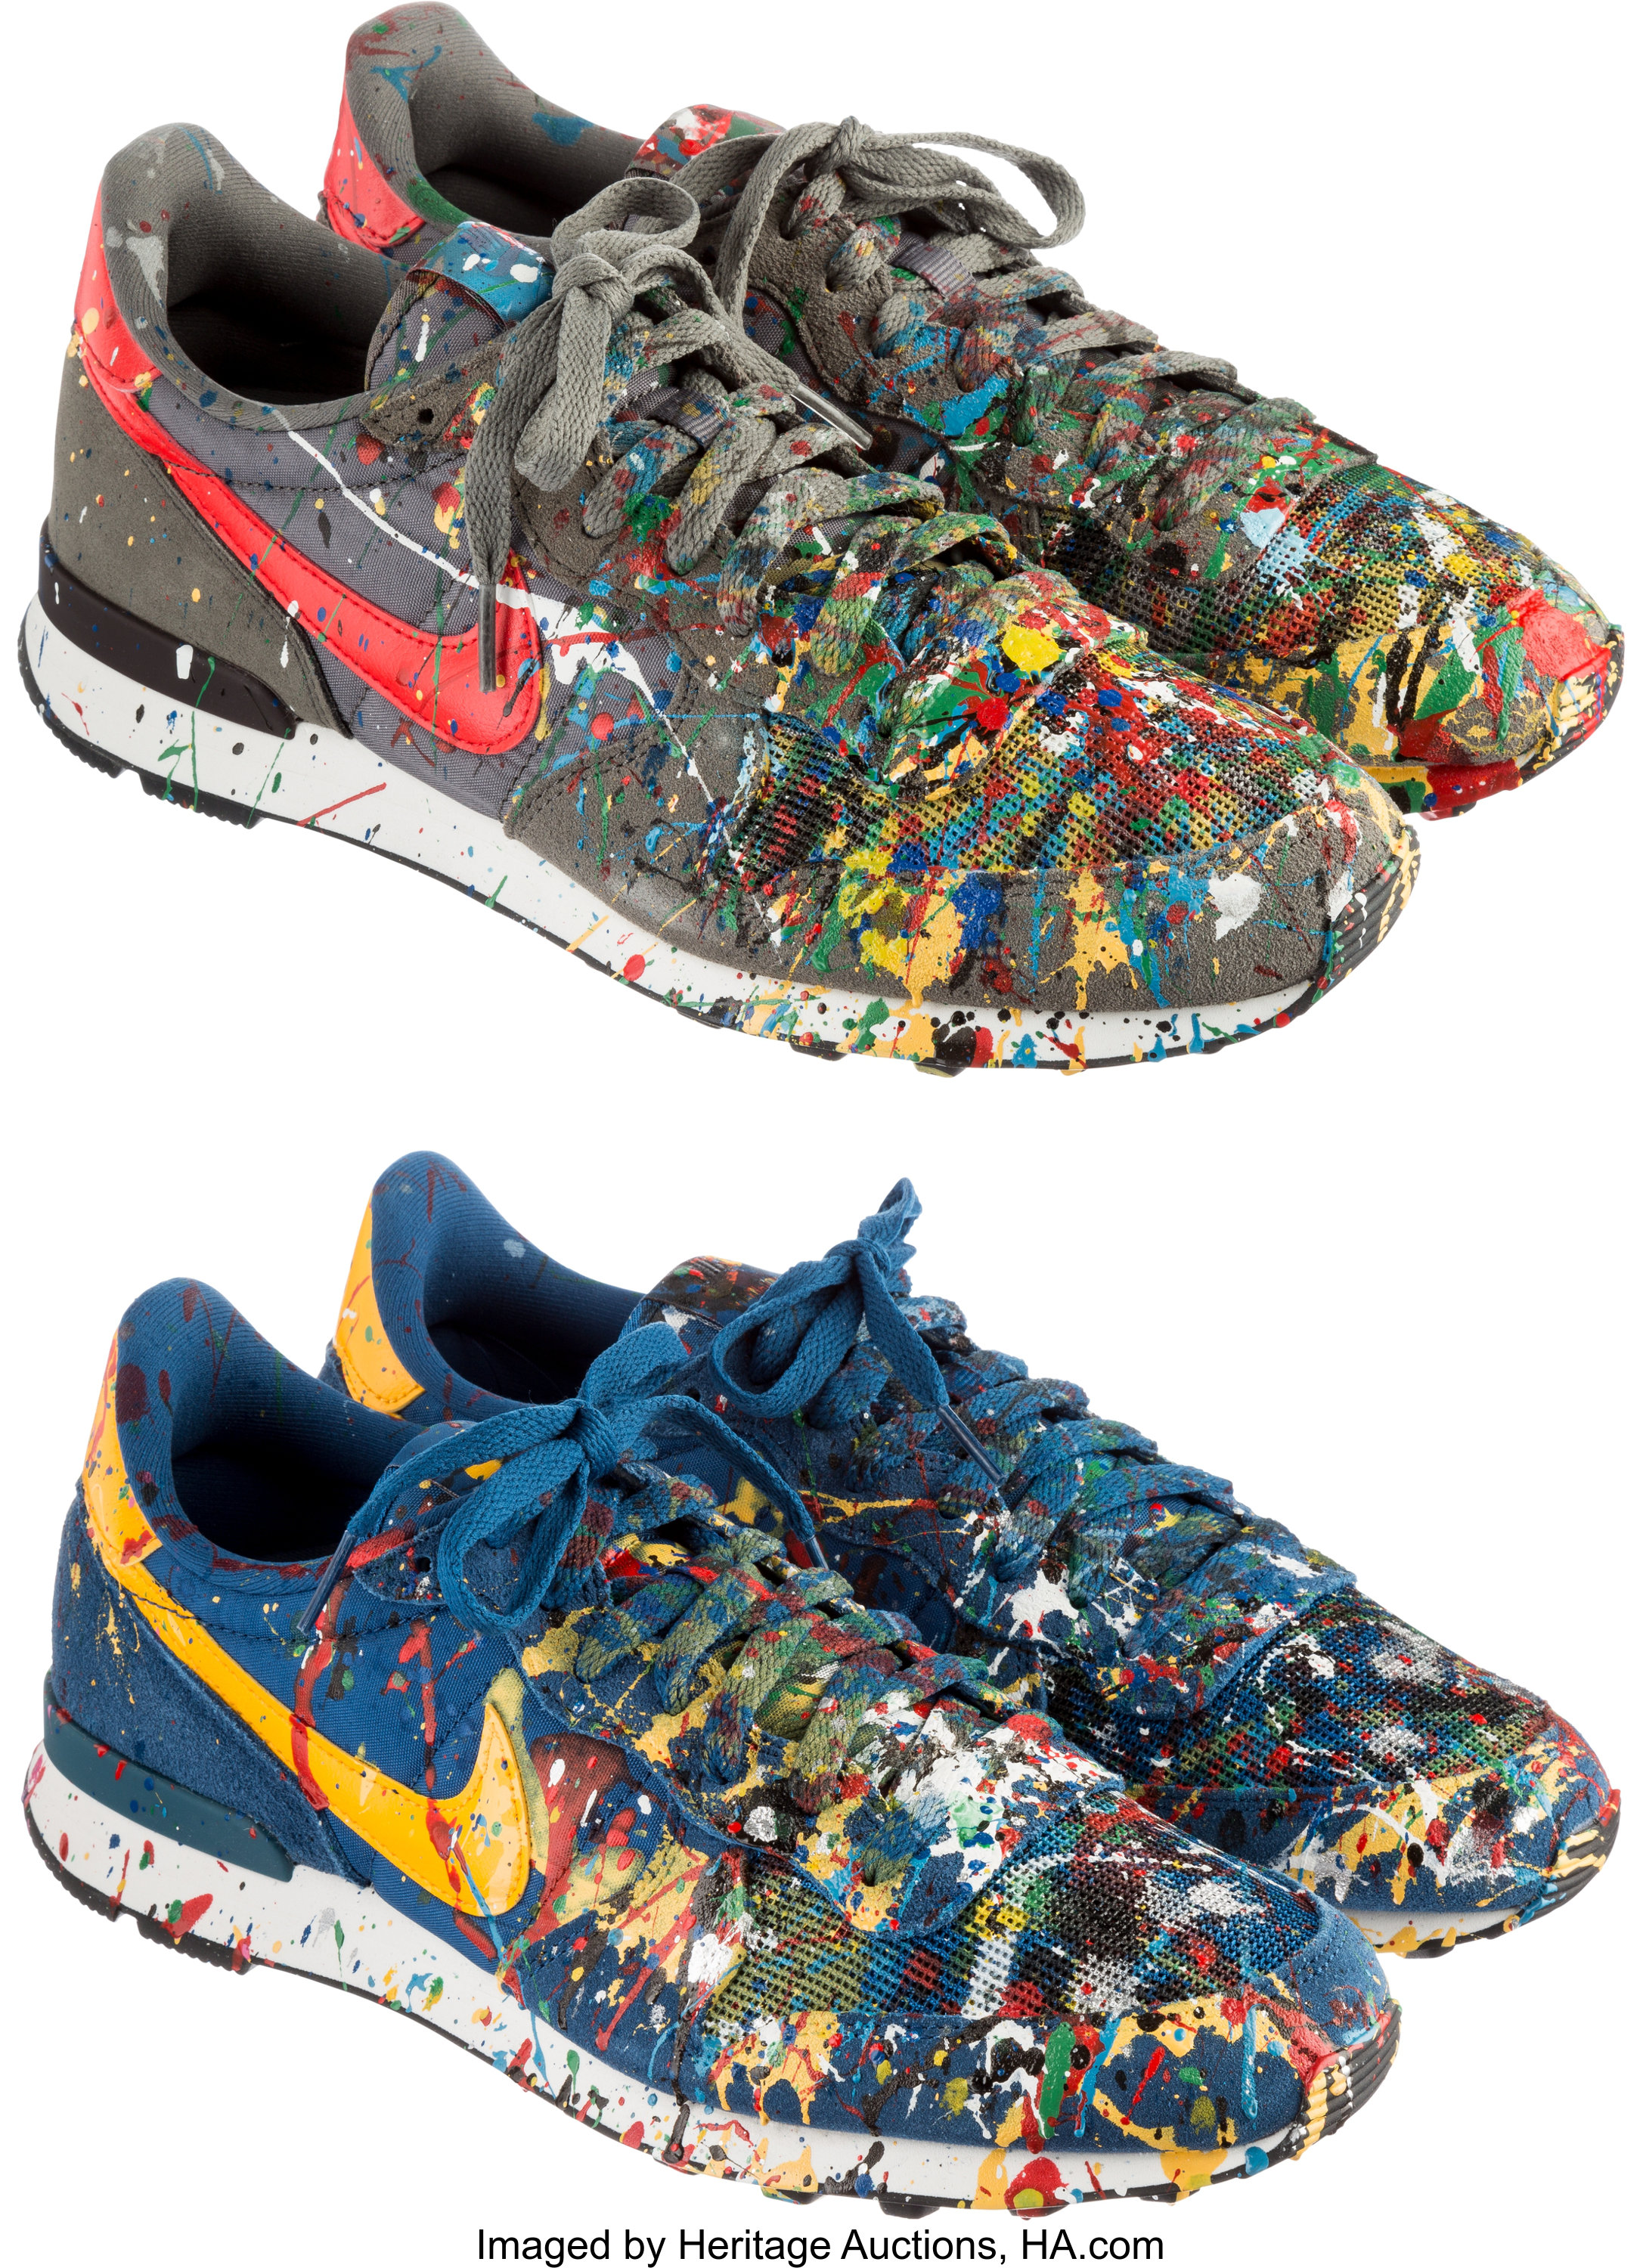 low priced 9a9bd 8b798 Nike X Mr. Brainwash. MBW Shoe (Internationalist)  2 pairs, Court   Lot   77025   Heritage Auctions